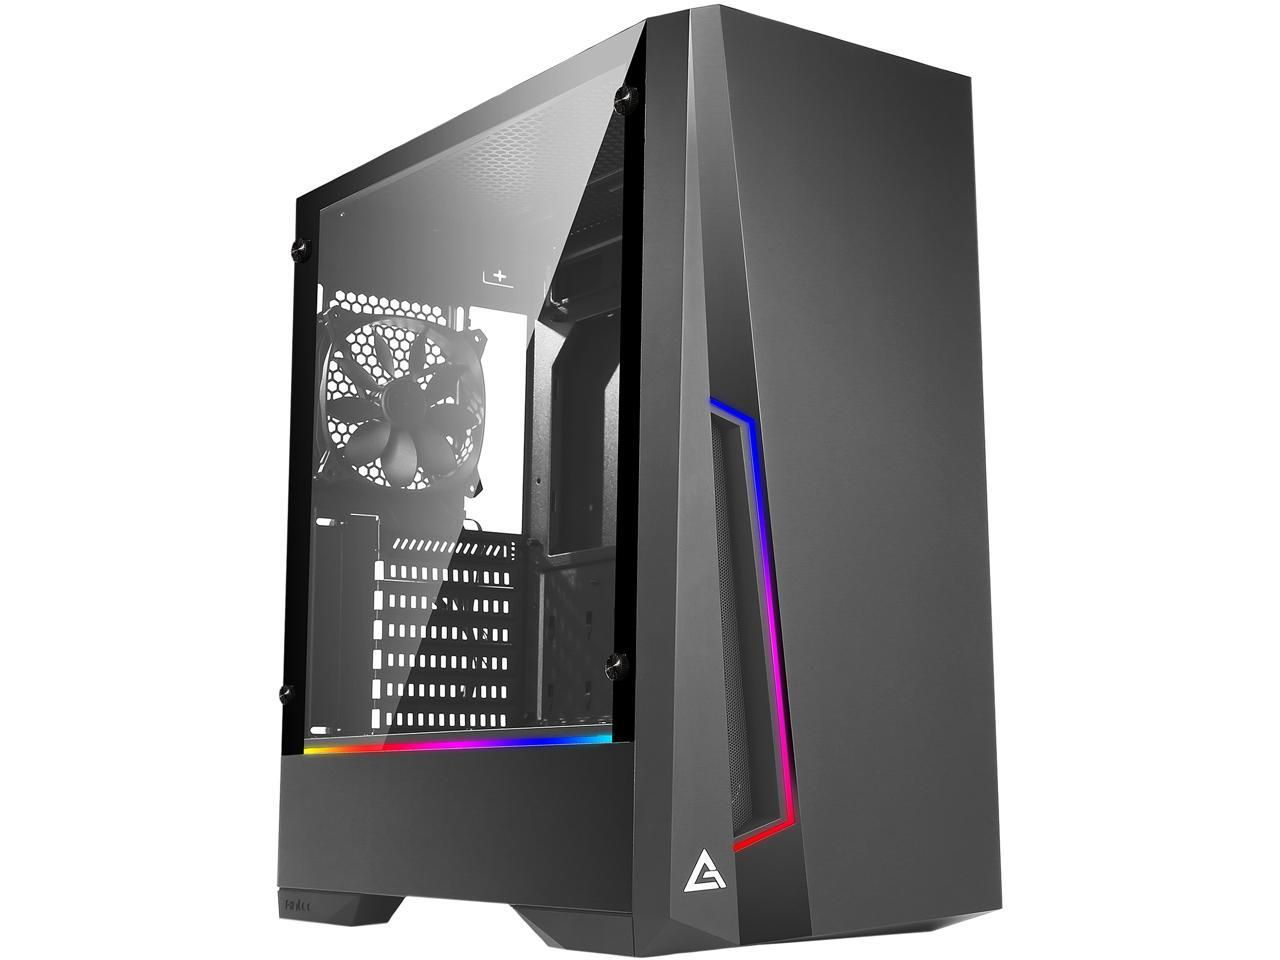 Antec Dark Phantom DP501 ATX Mid-tower Case